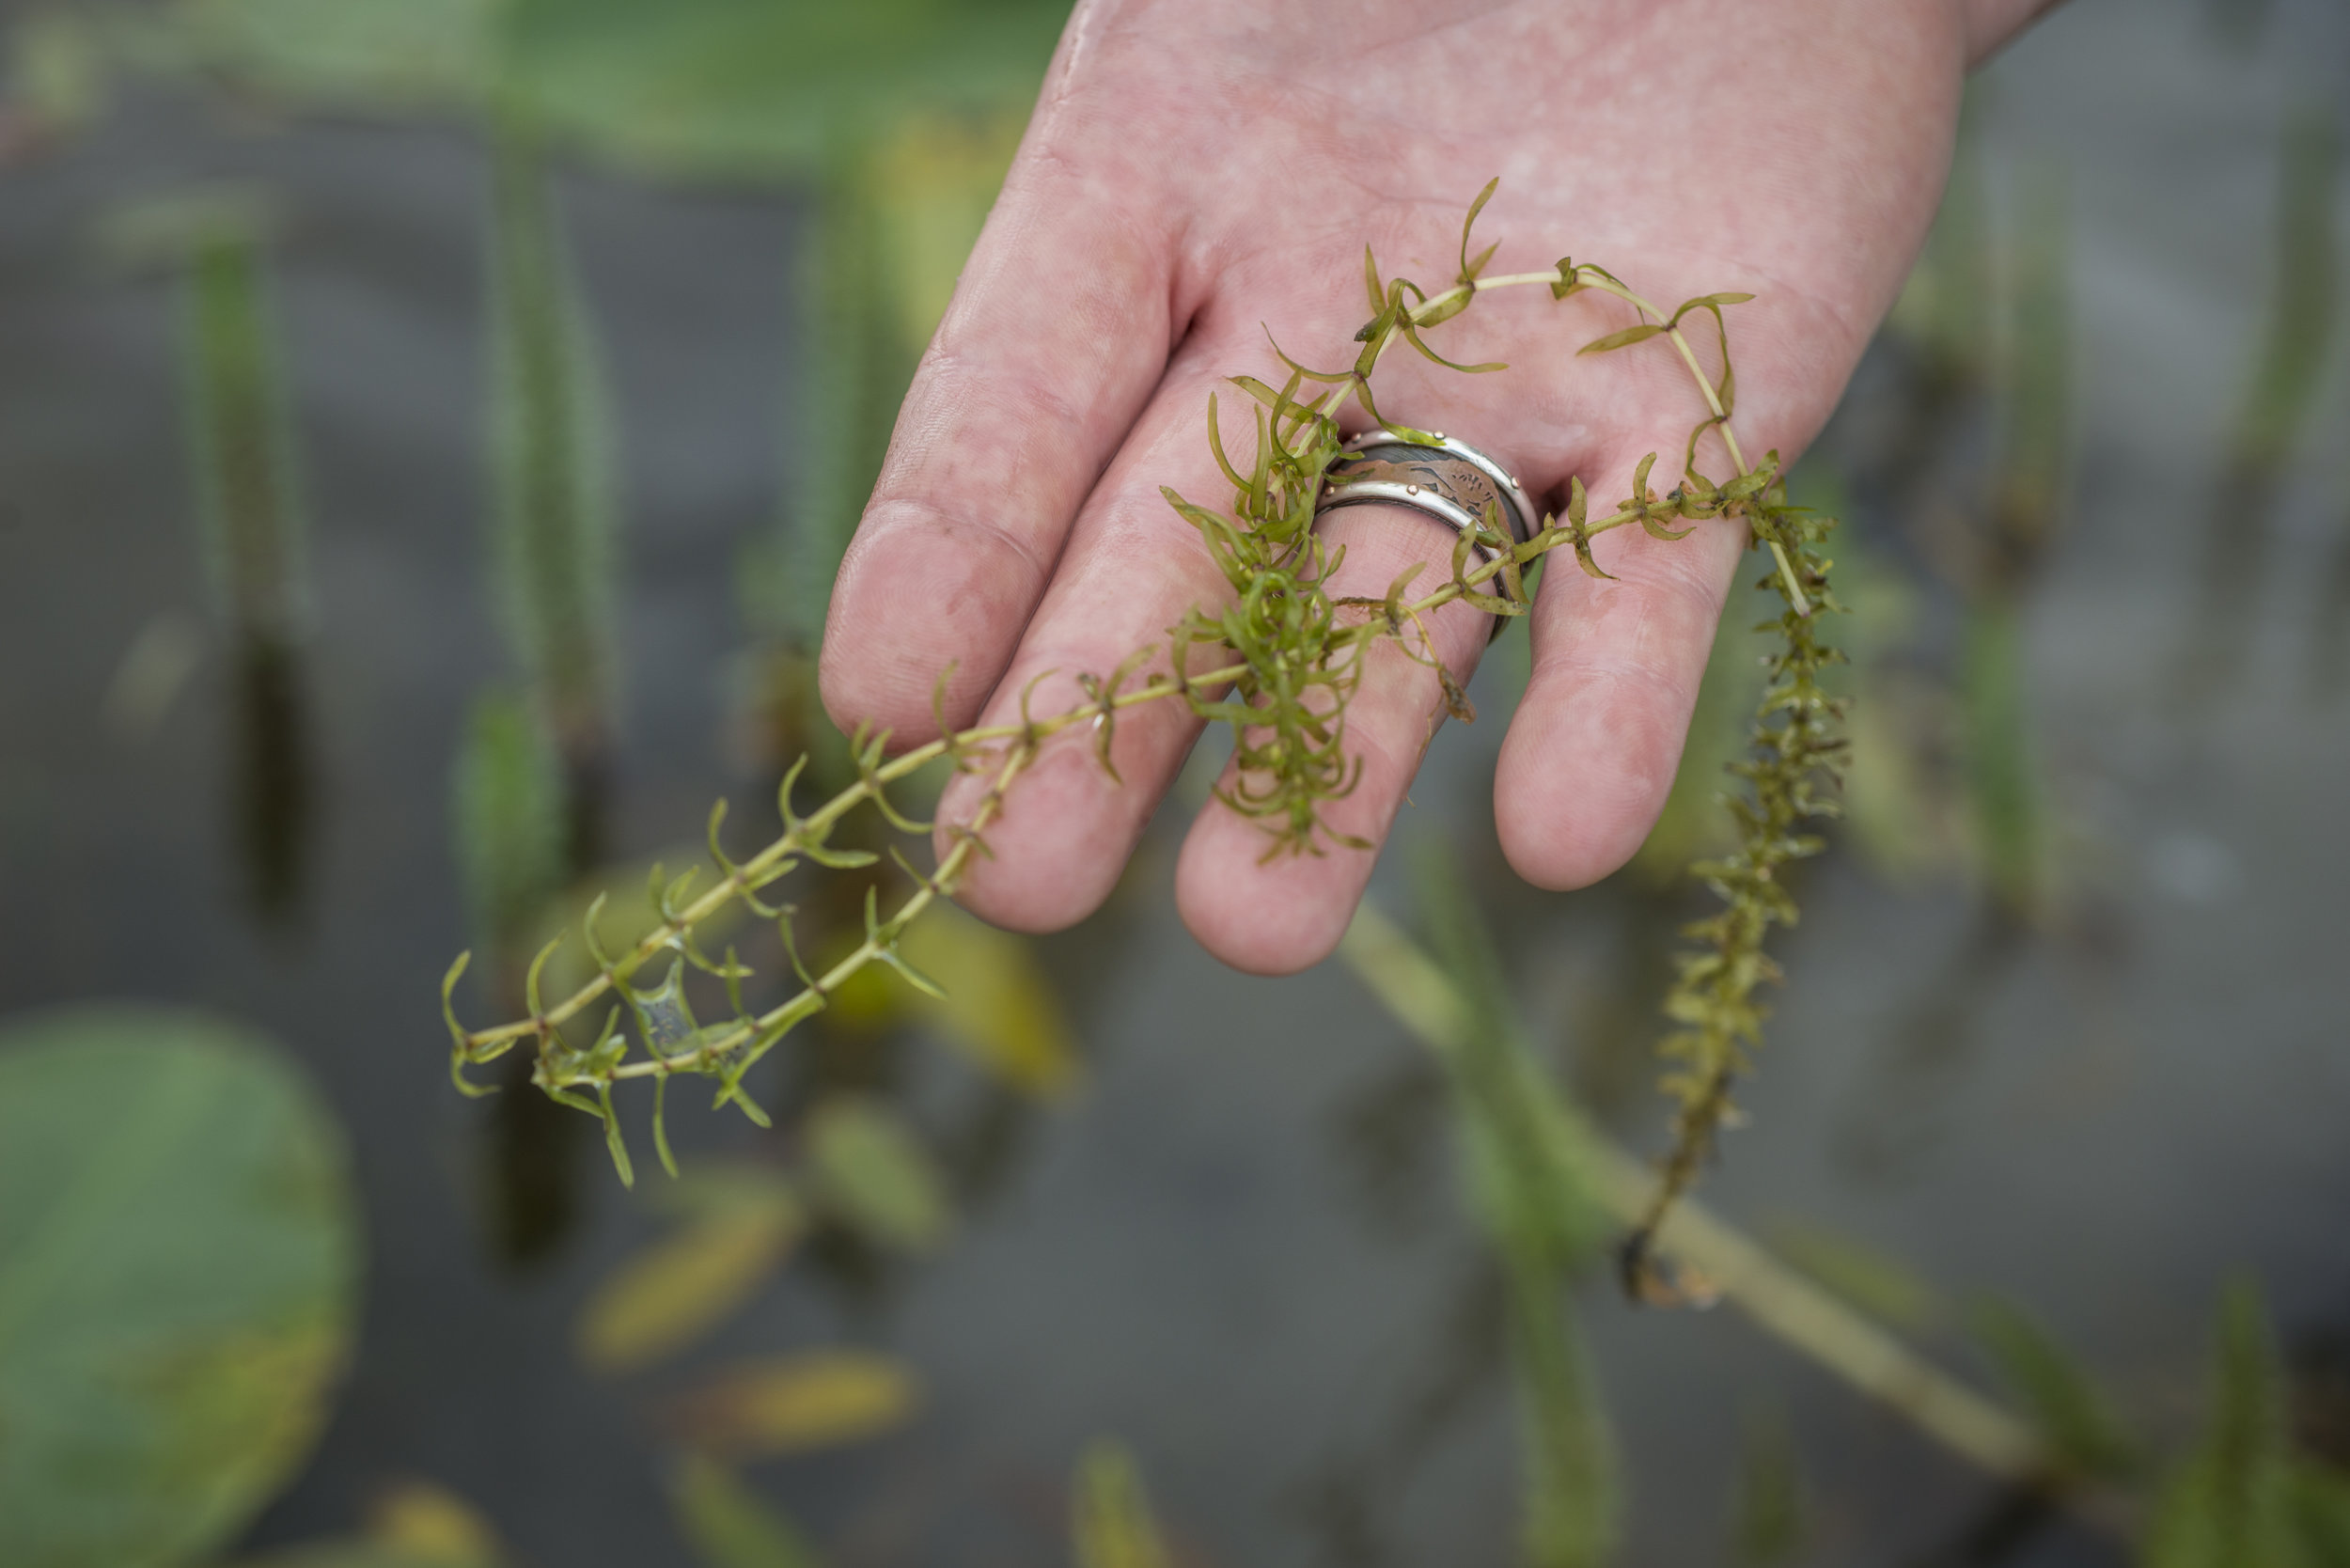 """Robert Canva holds a piece of an elodea plant in his hand. He shows it to everyone in the group saying, """"This little plant is causing lots of trouble."""" Elodea is an invasive species of aquatic plant that the state of Alaska is interested in eradicating."""